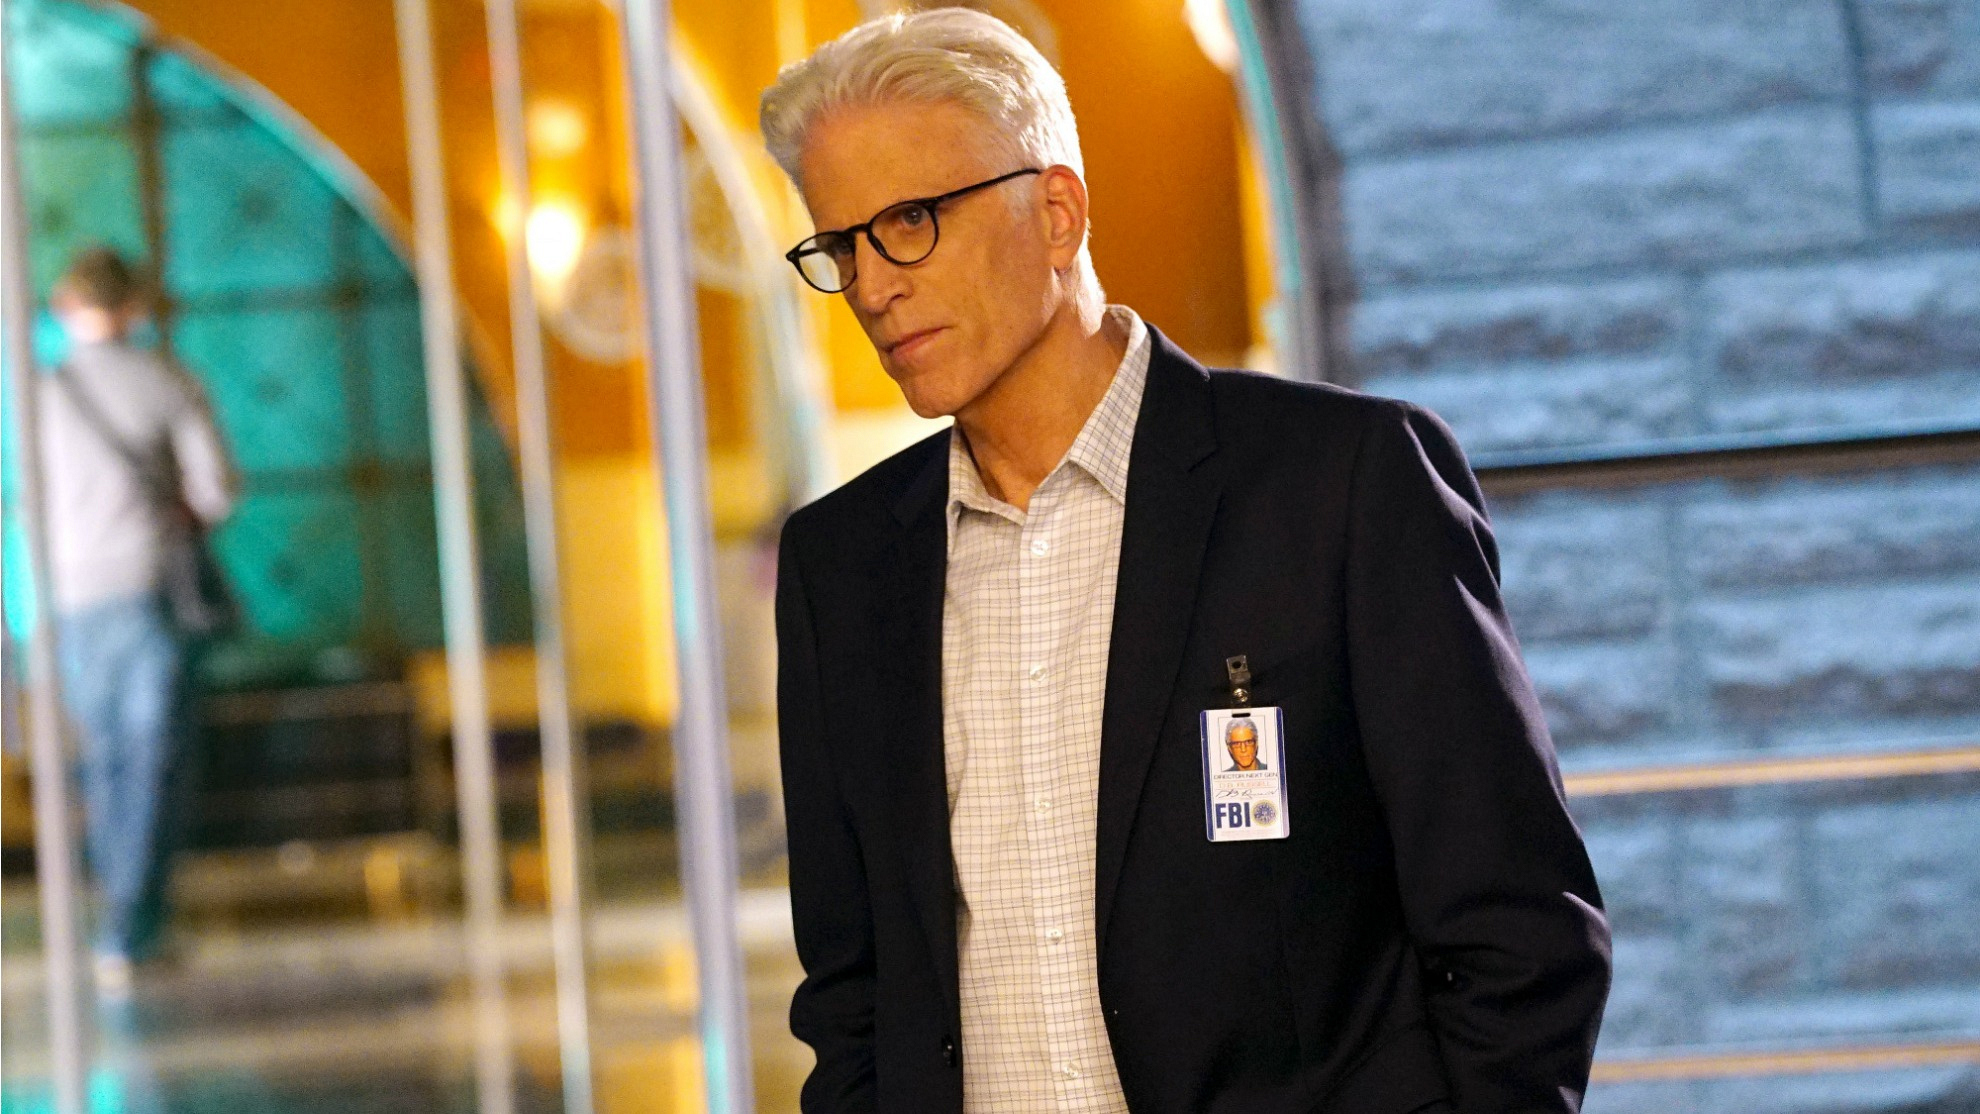 Ted Danson as D.B. Russell